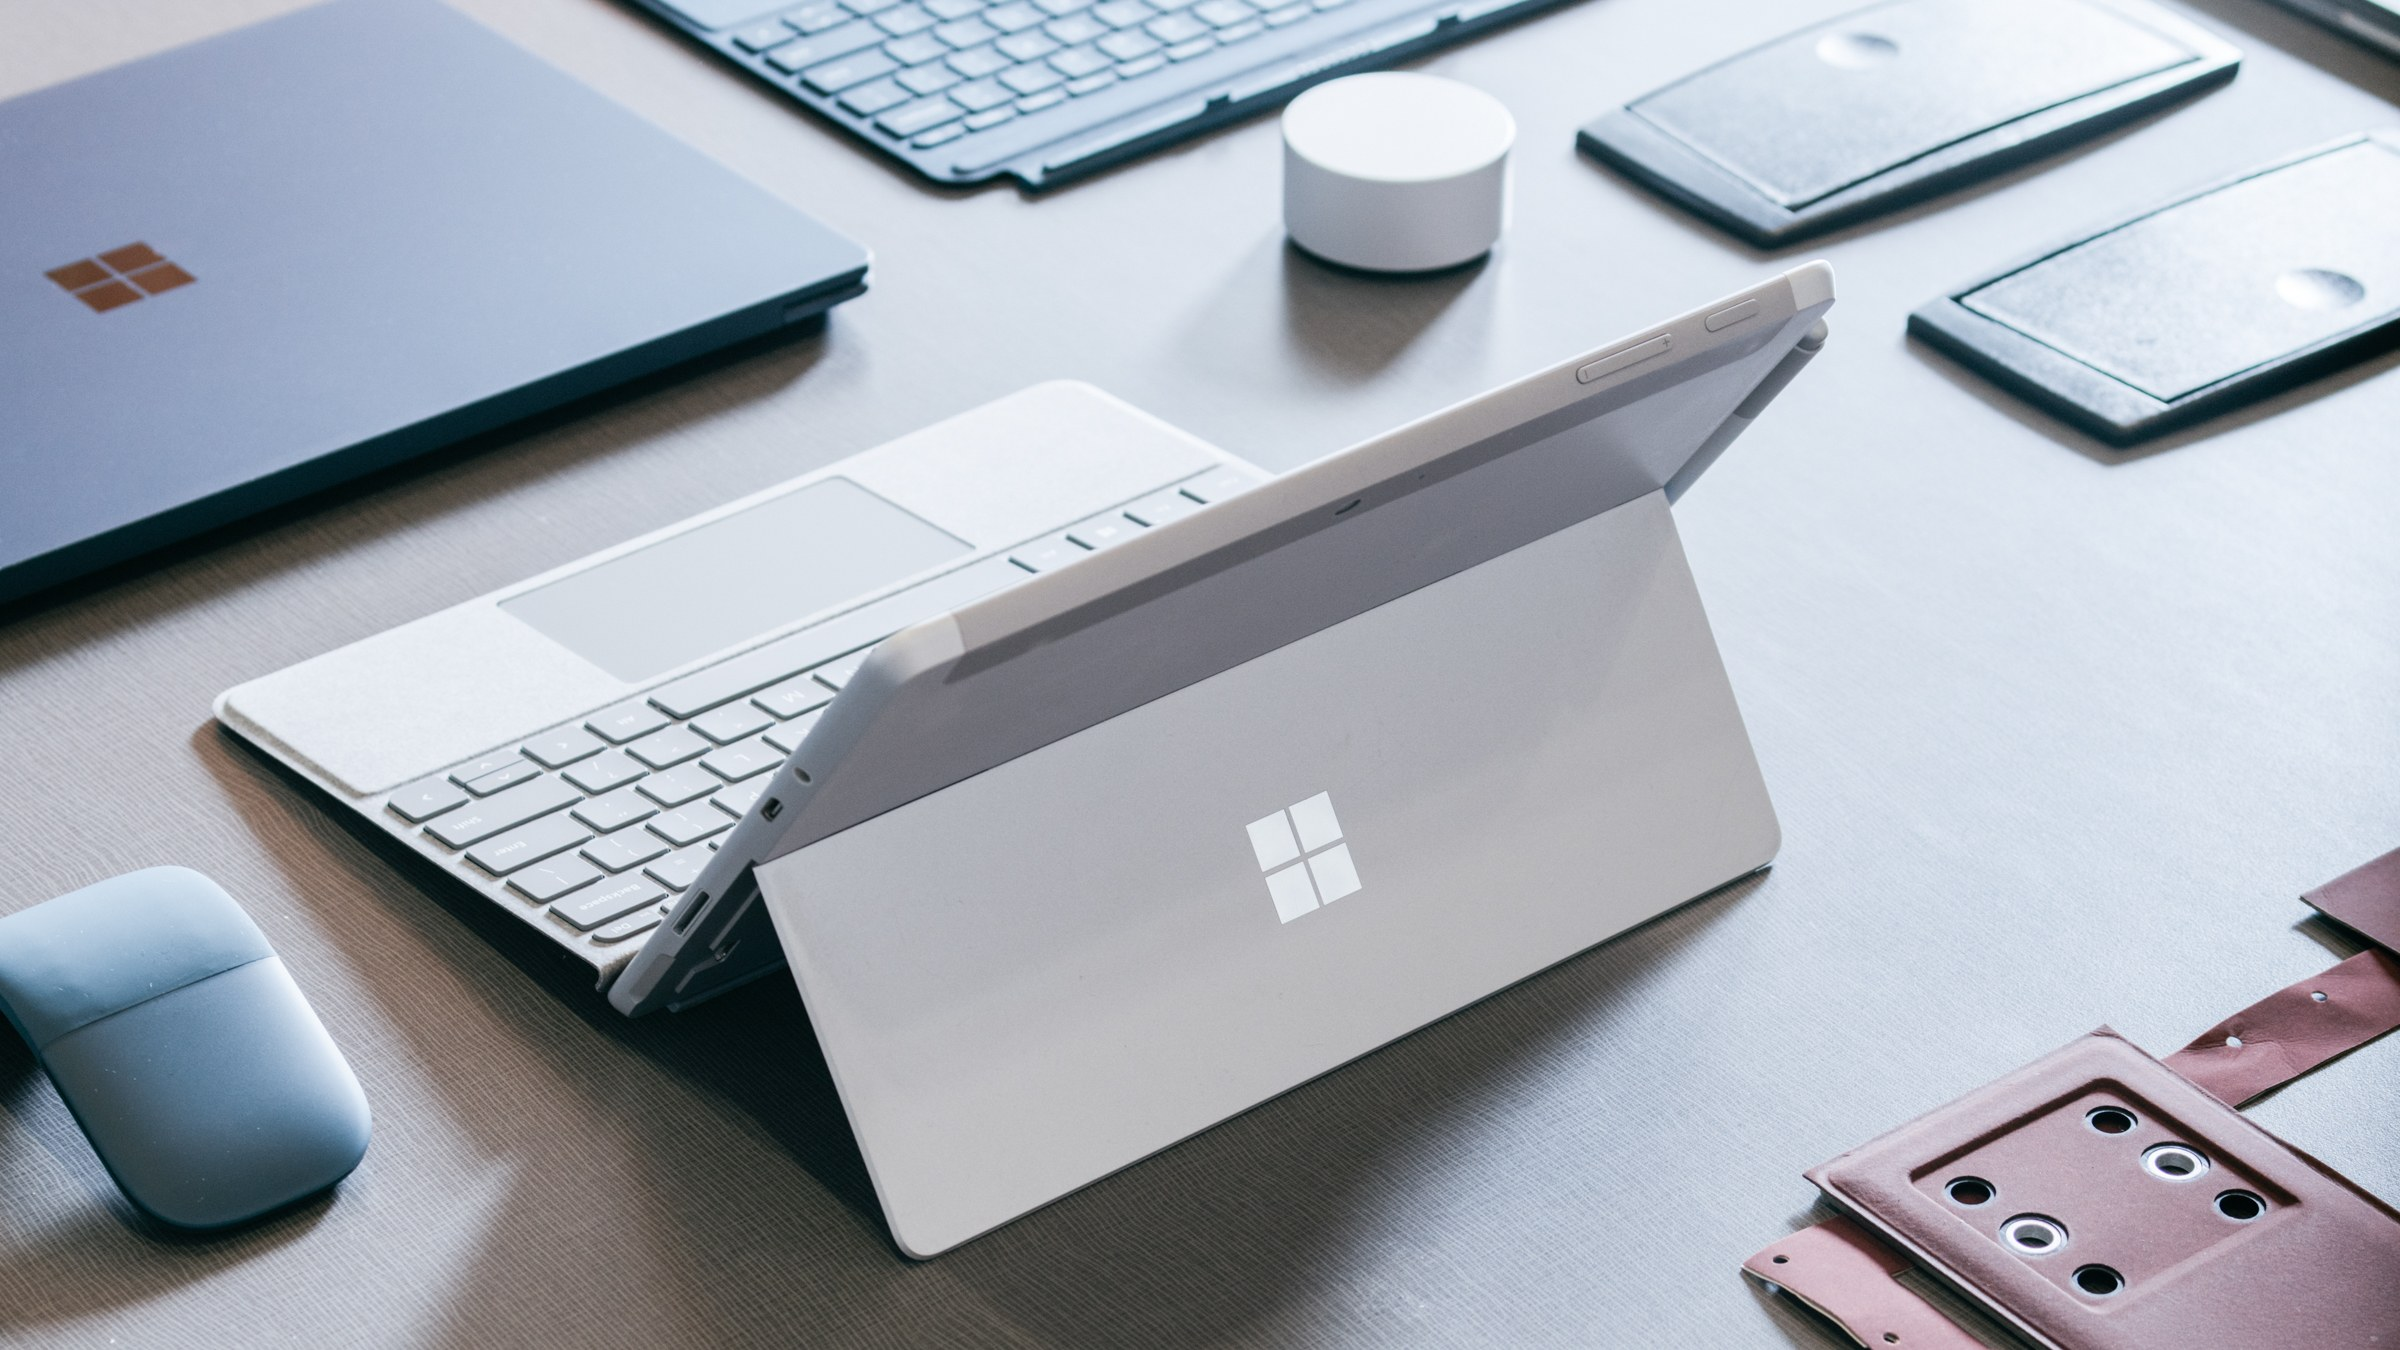 Photo of price cut, style remains: Microsoft's new Surface